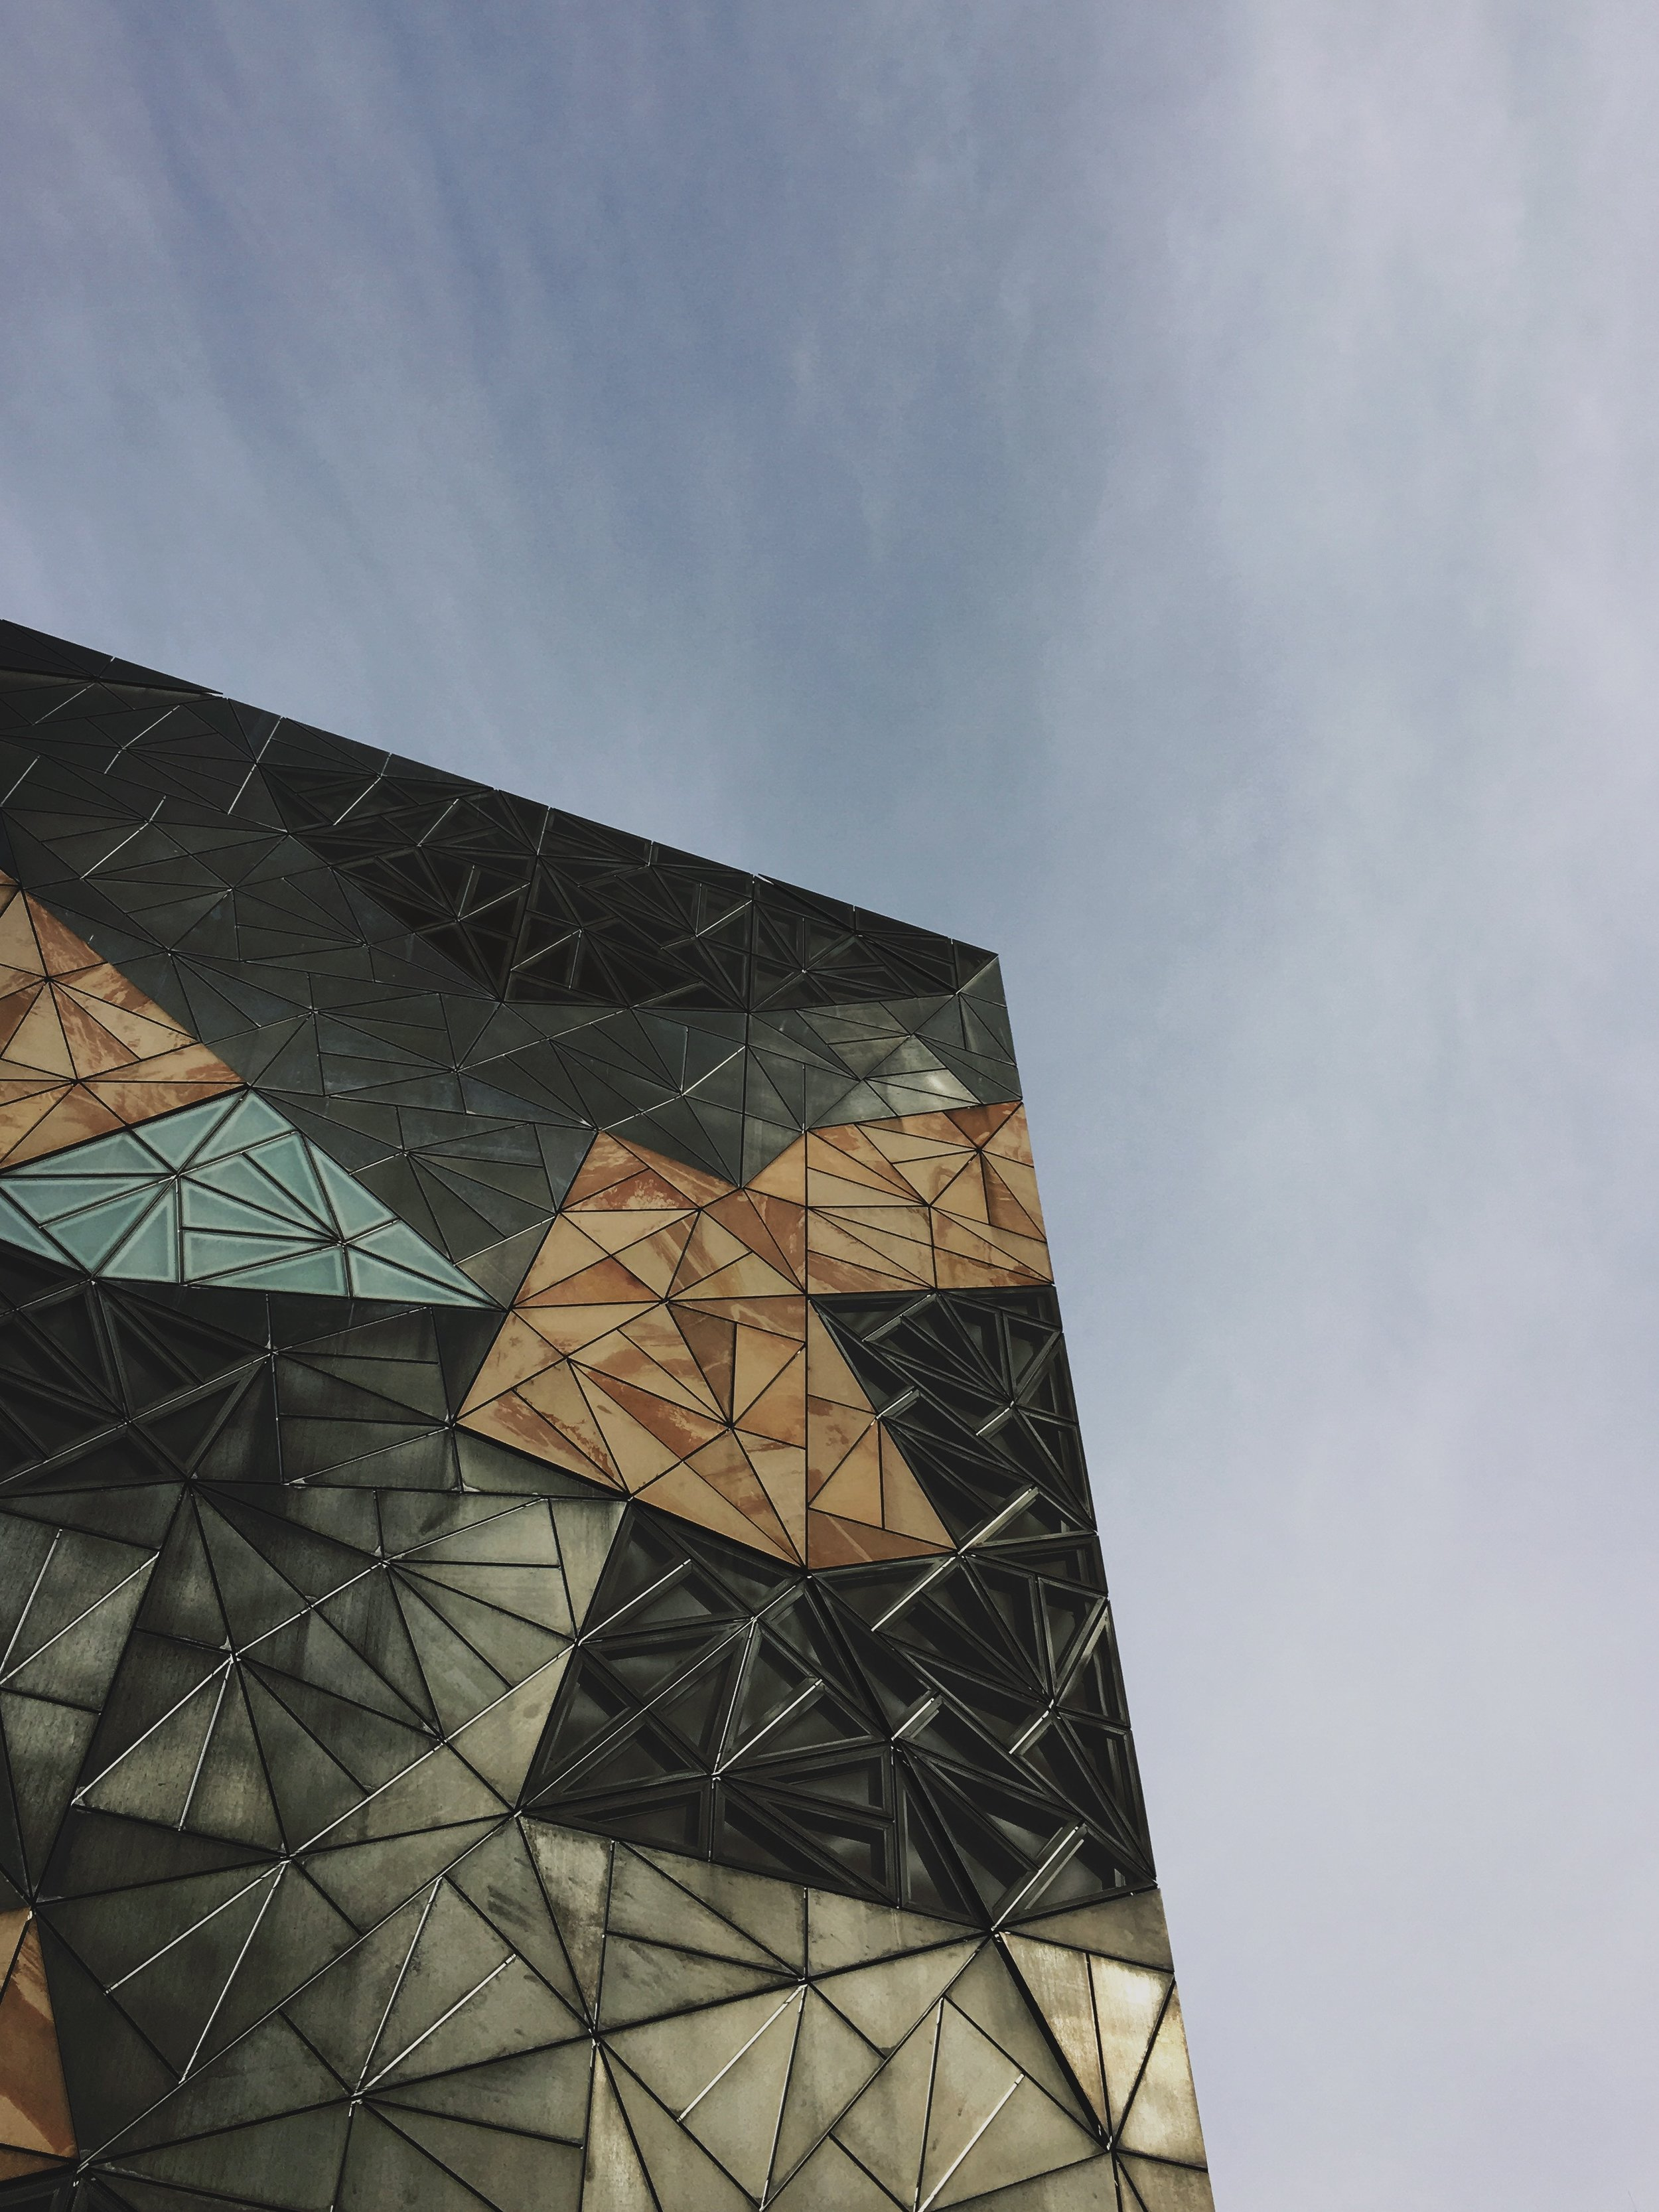 Federation Square, designed by Lab Architecture. Photo by Jon Tyson.